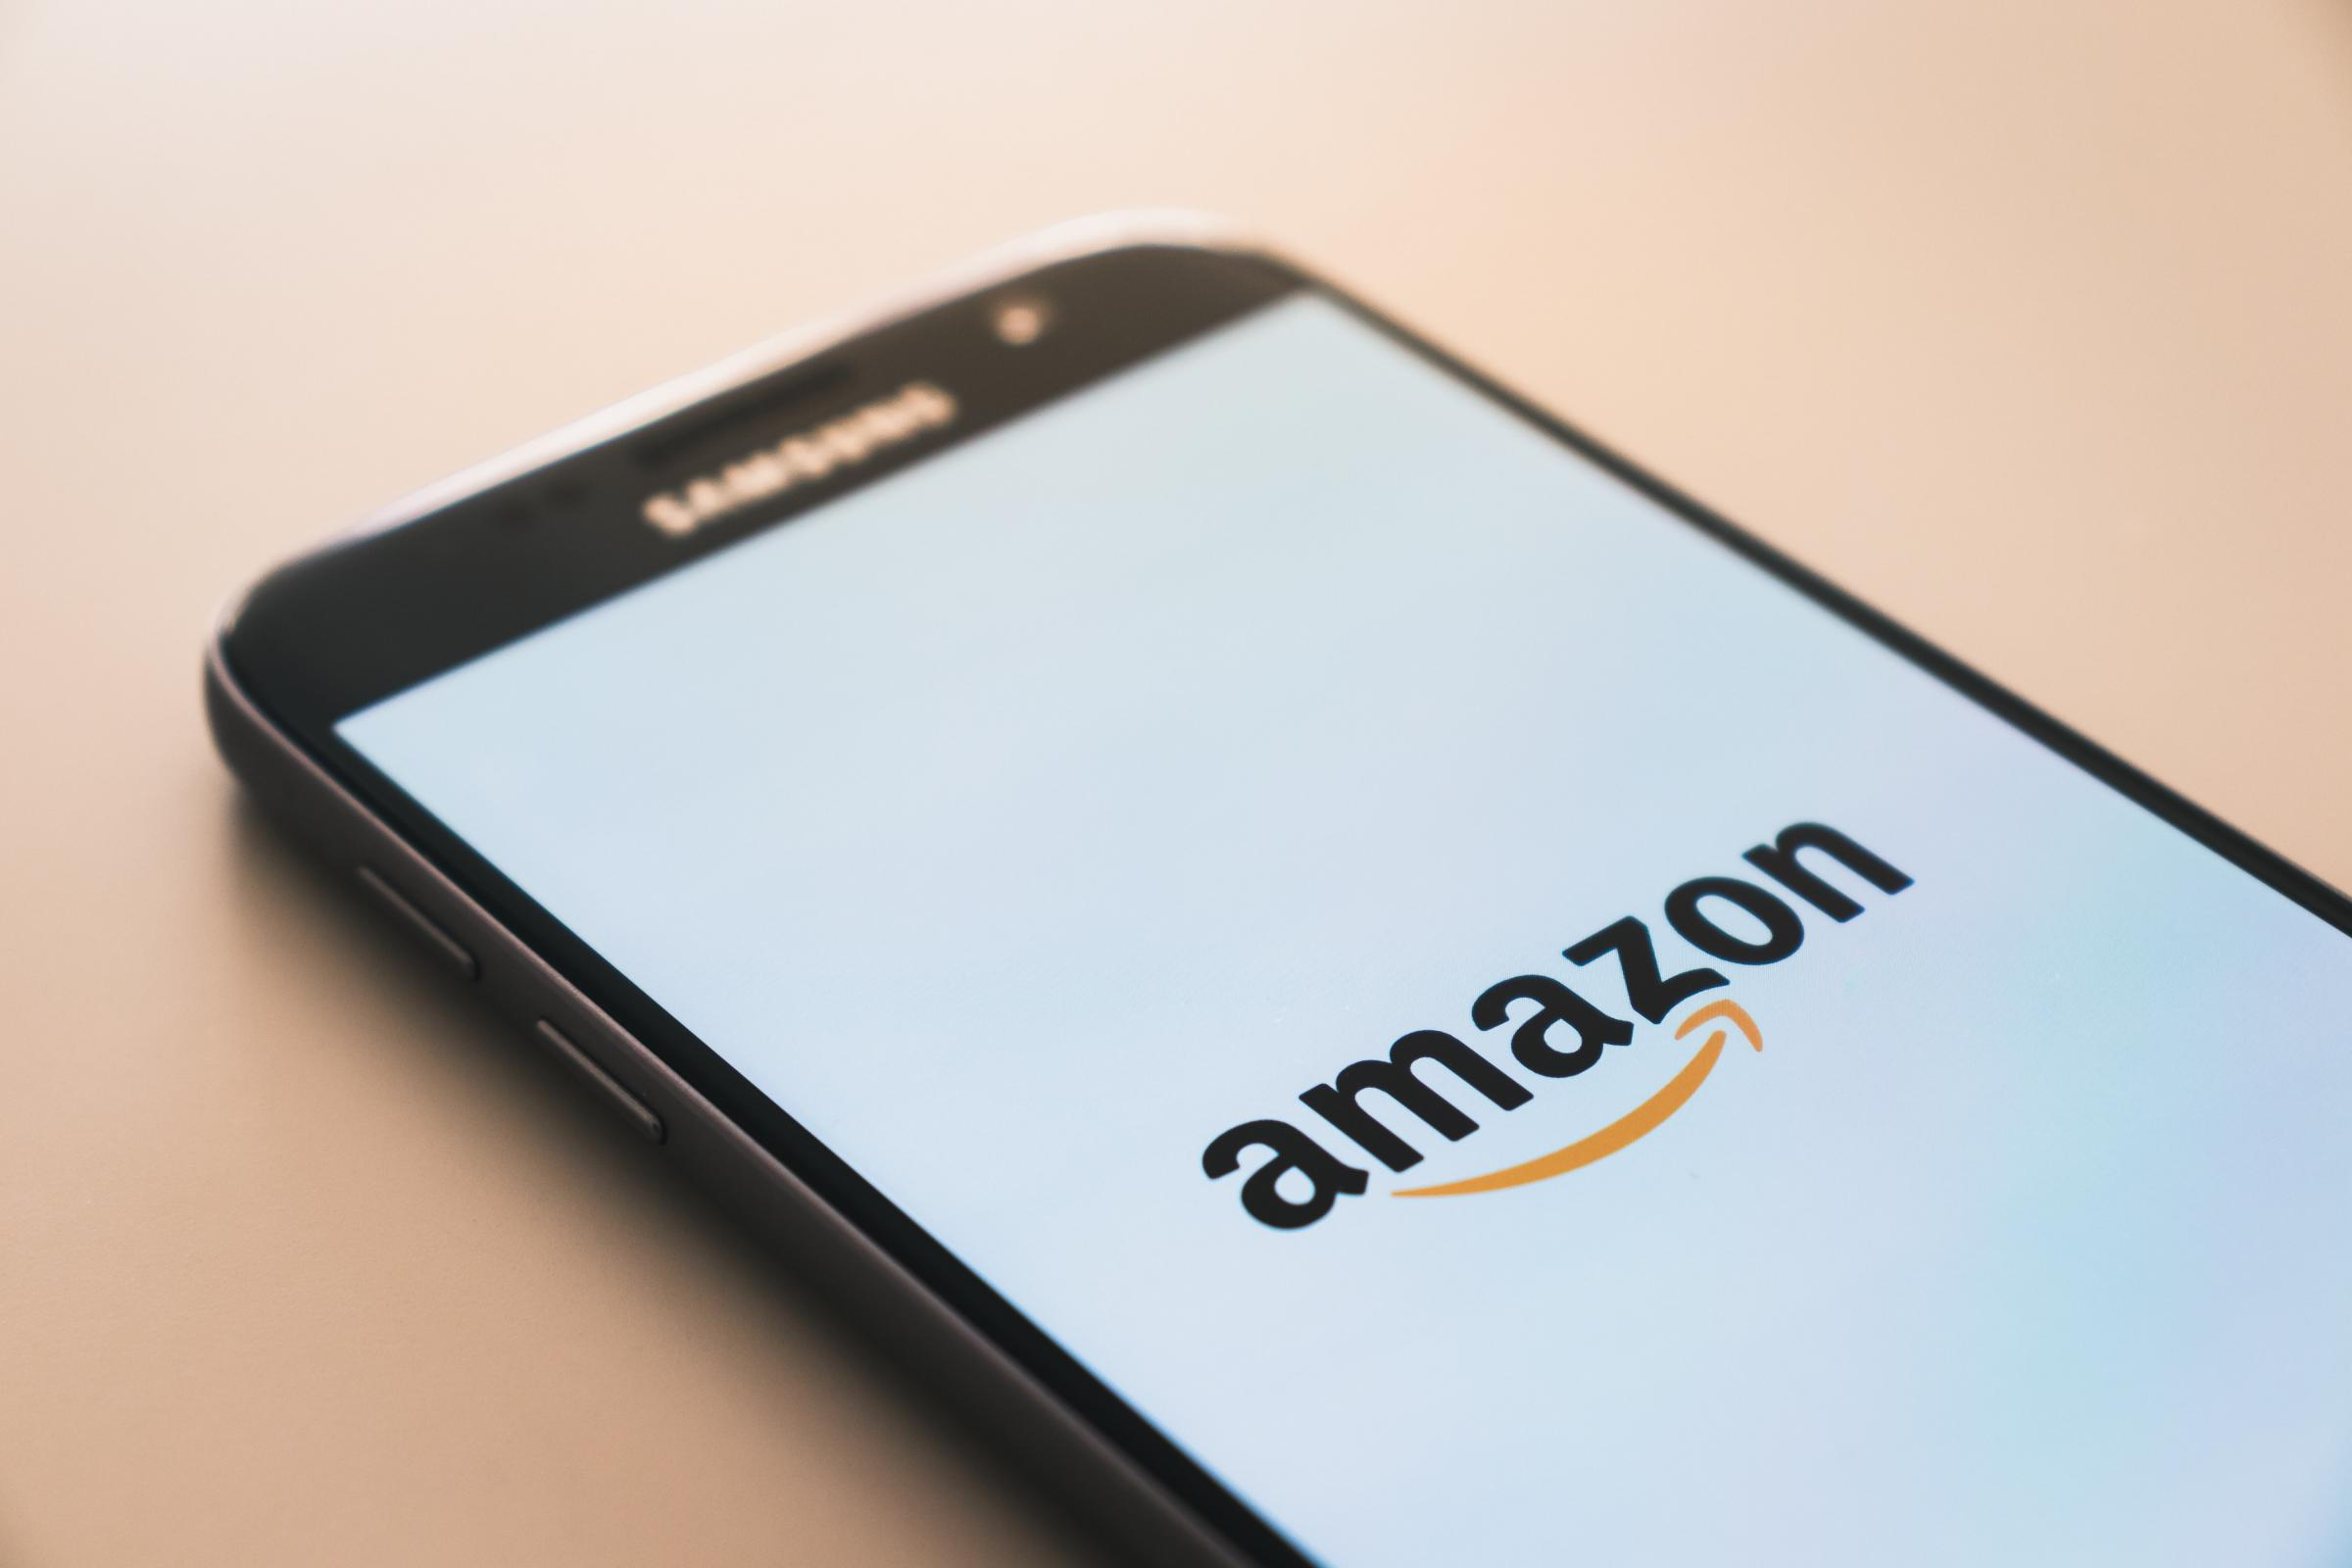 Warning to online shoppers about Amazon 'brushing' scam - here's how it works